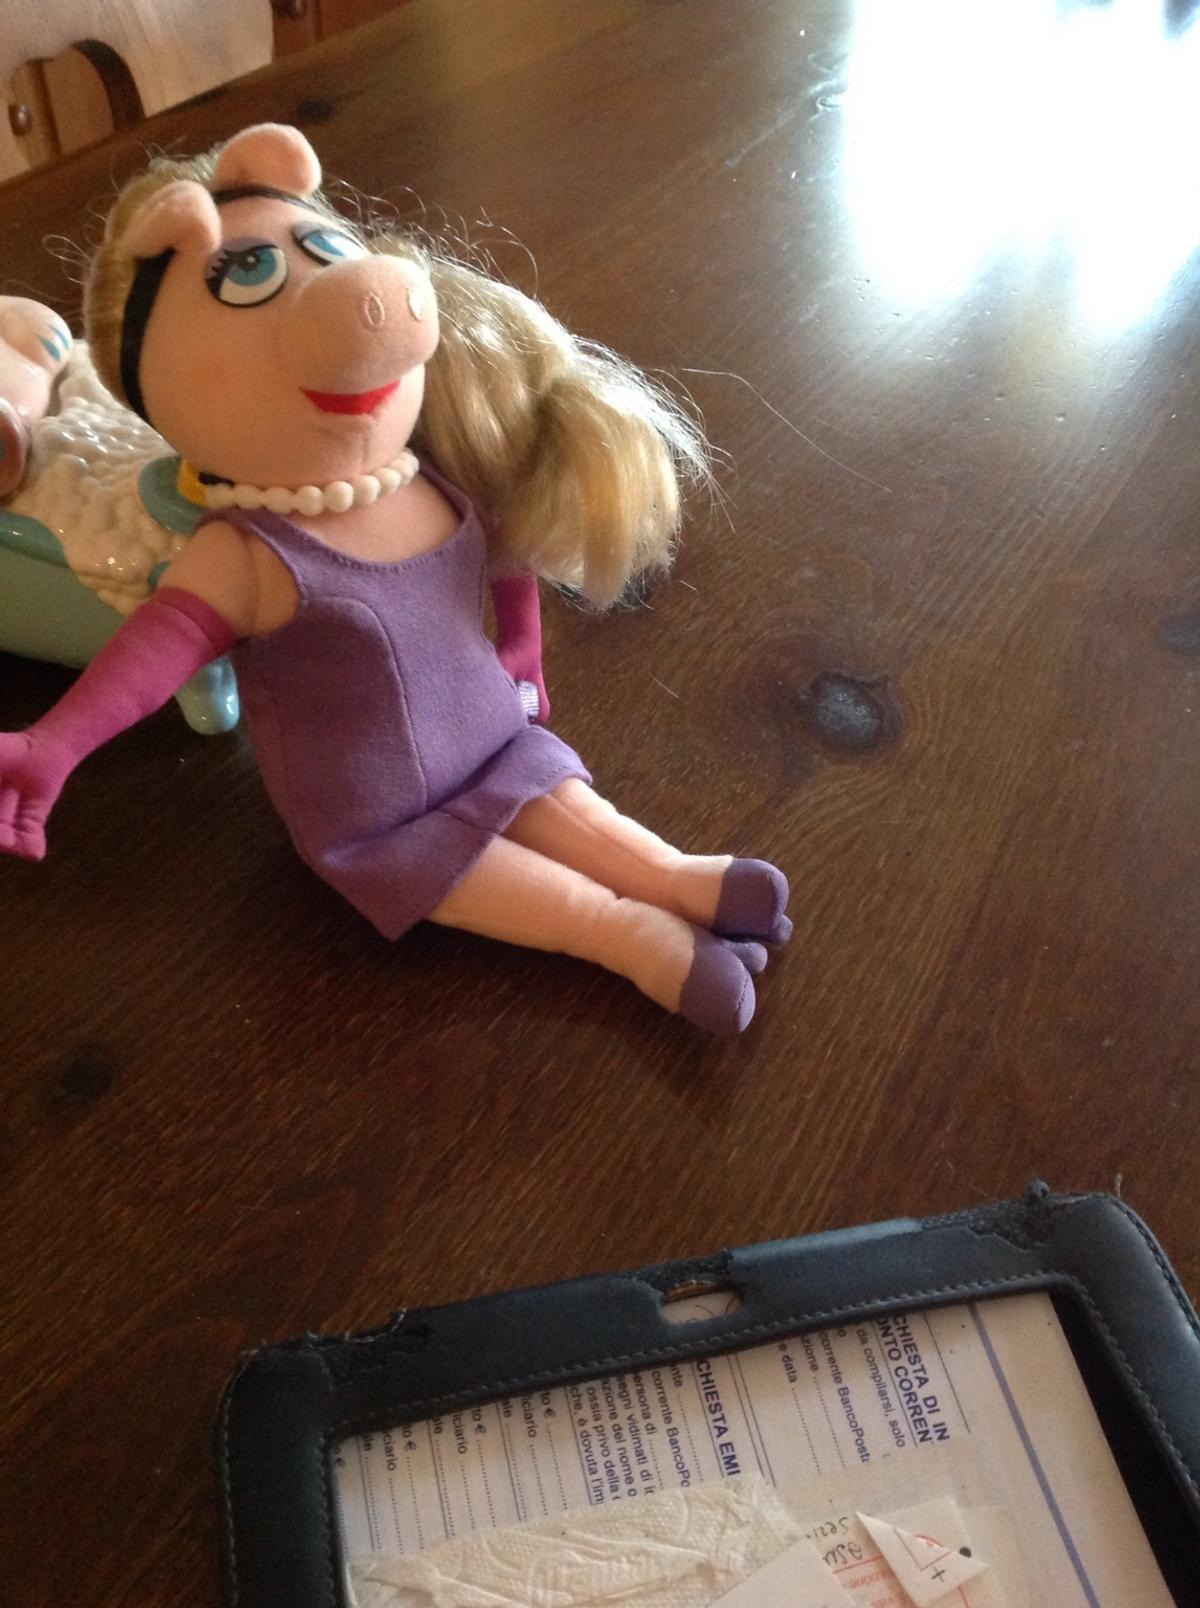 Miss piggy muppets originale in 42013 Scandiano for €13.00 for